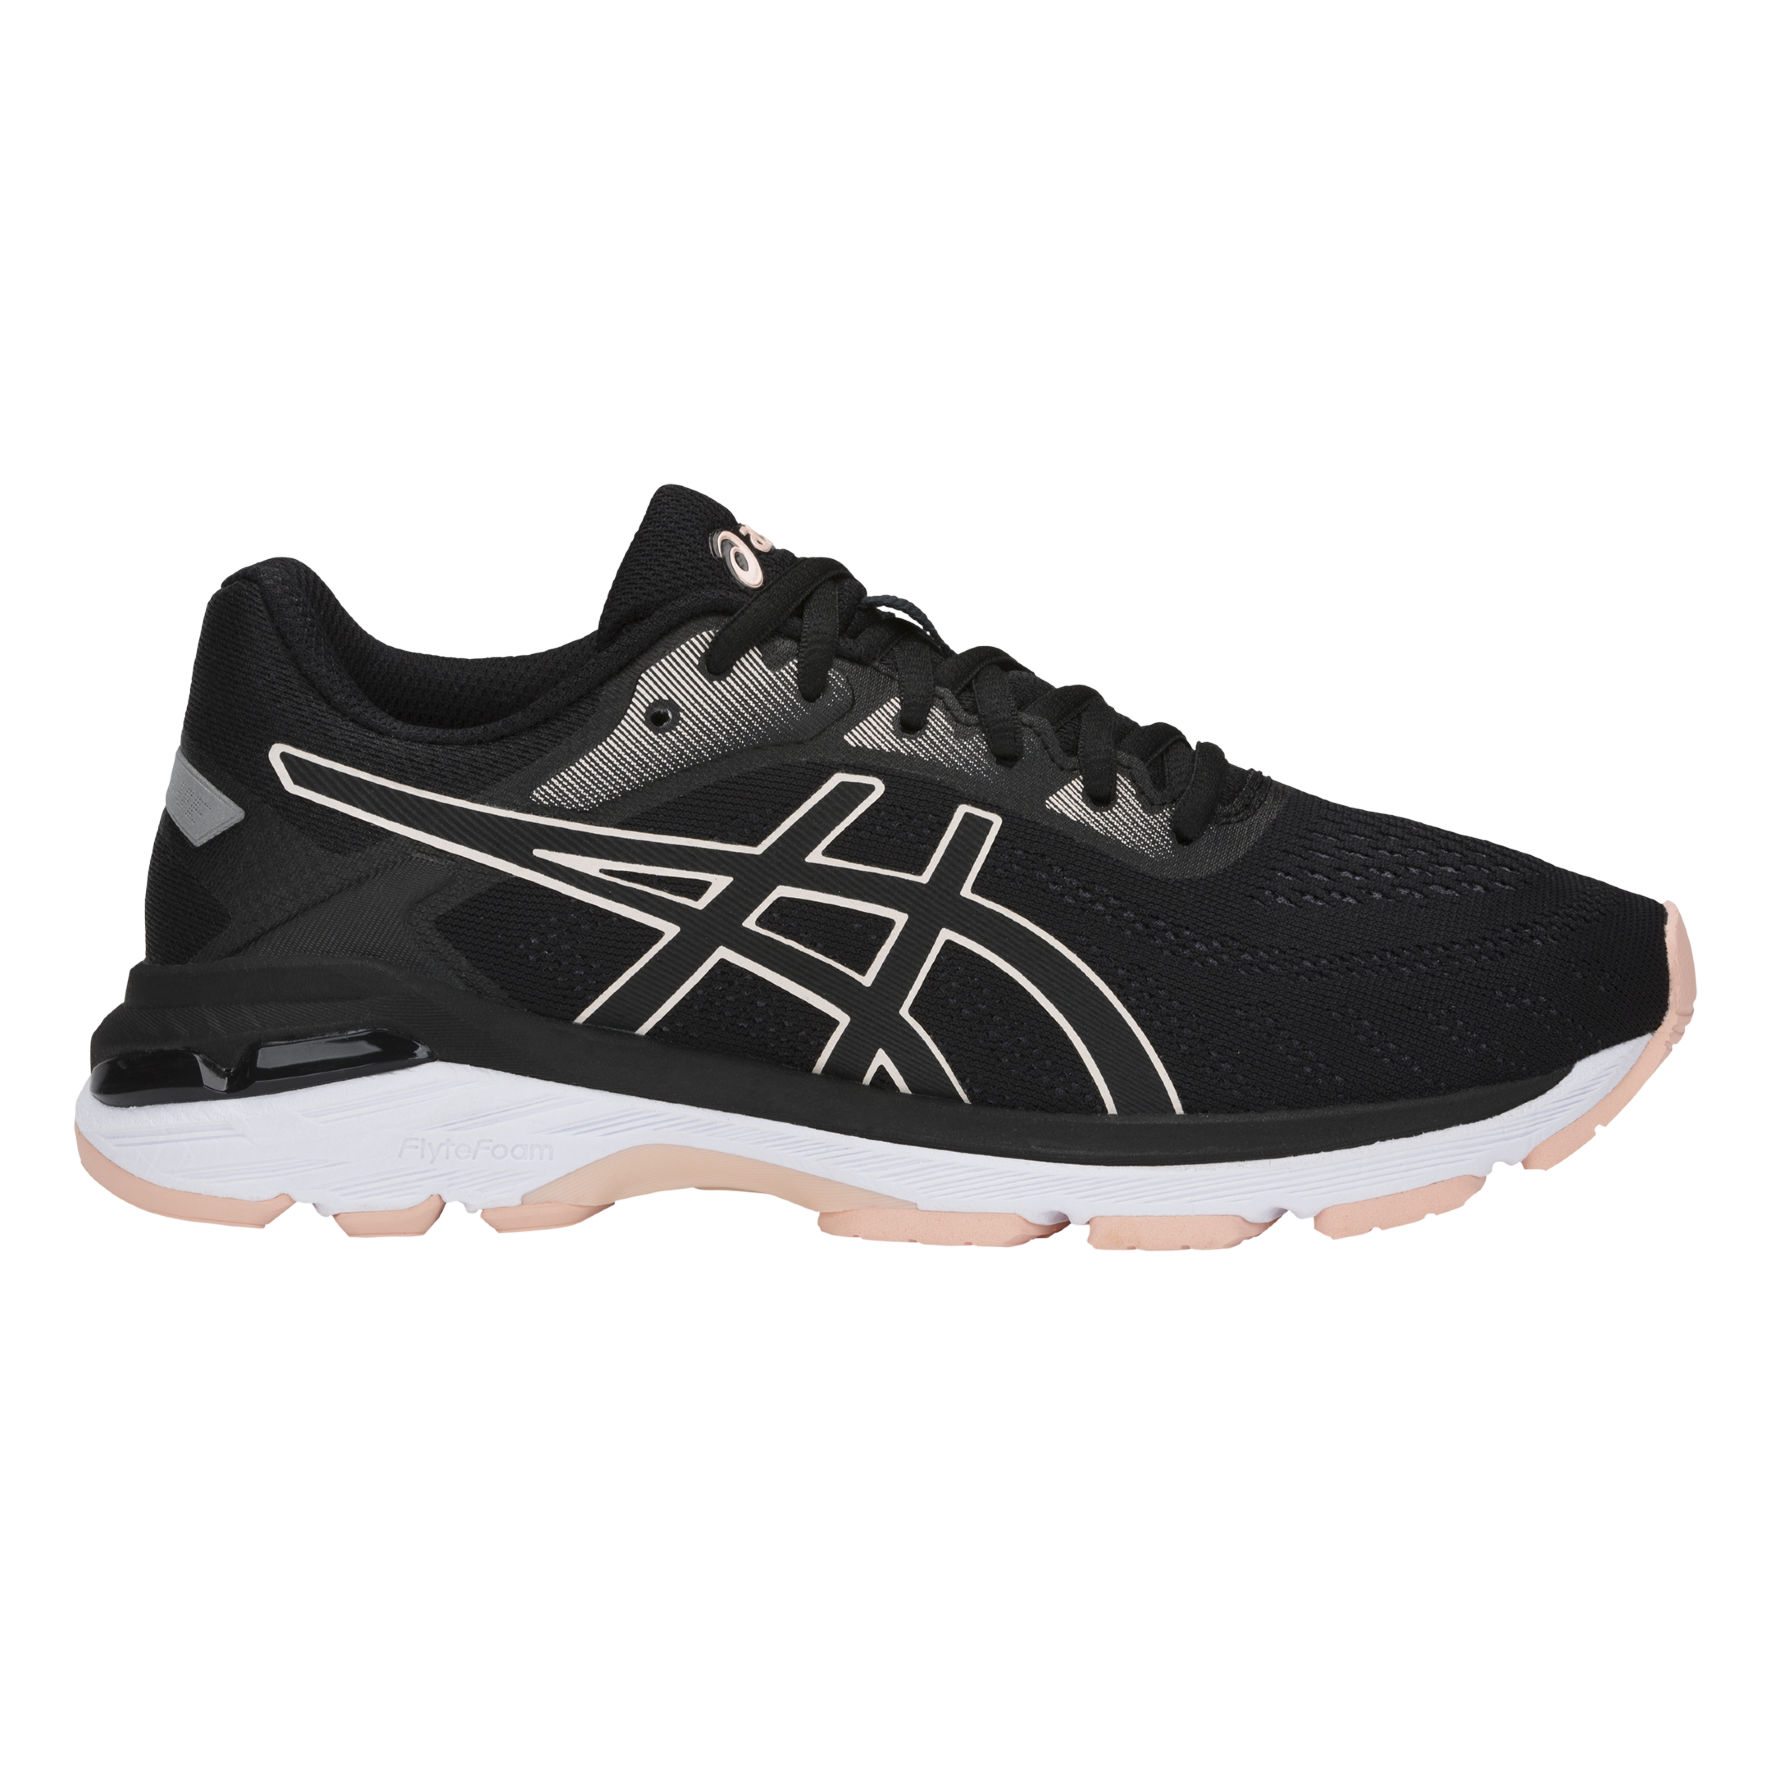 Asics Lady Gel Pursue 5 in Schwarz Rosa